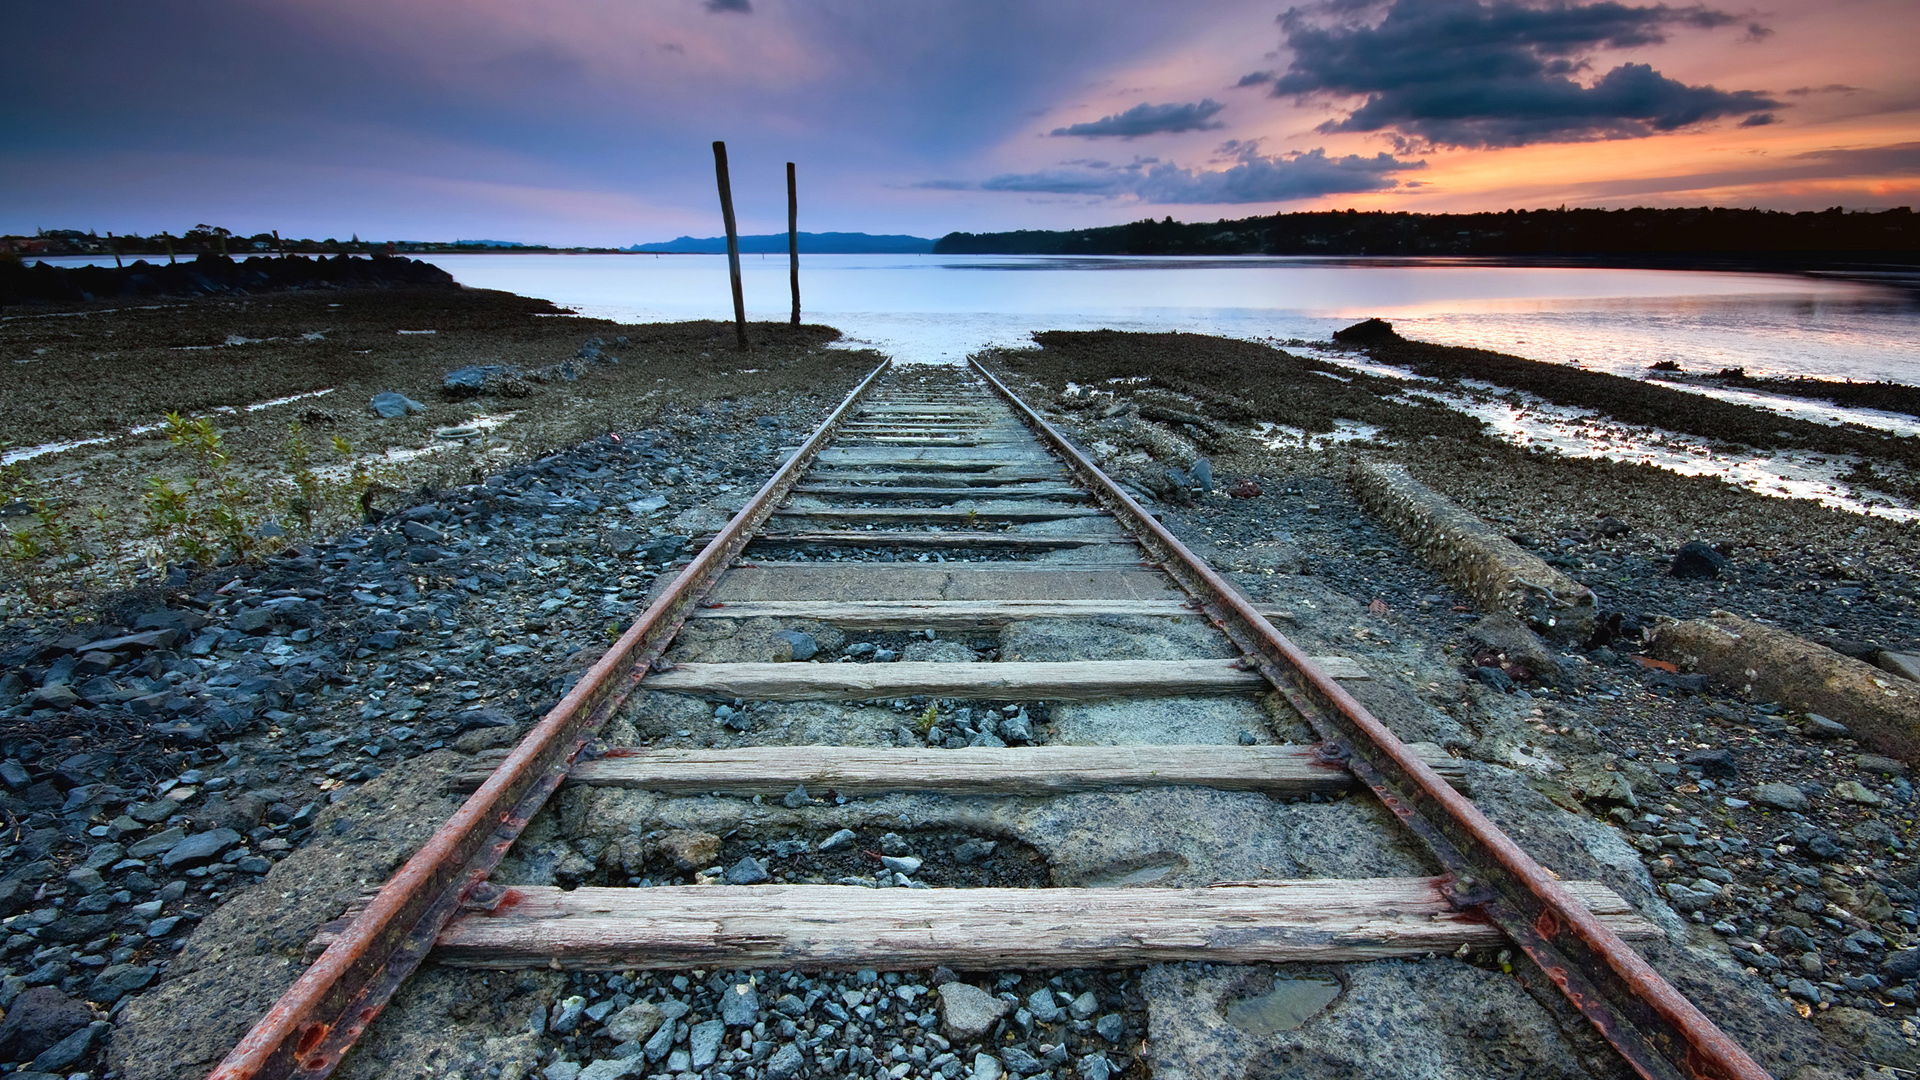 Water Tracks Train High Resolution wallpapers HD   114512 1920x1080